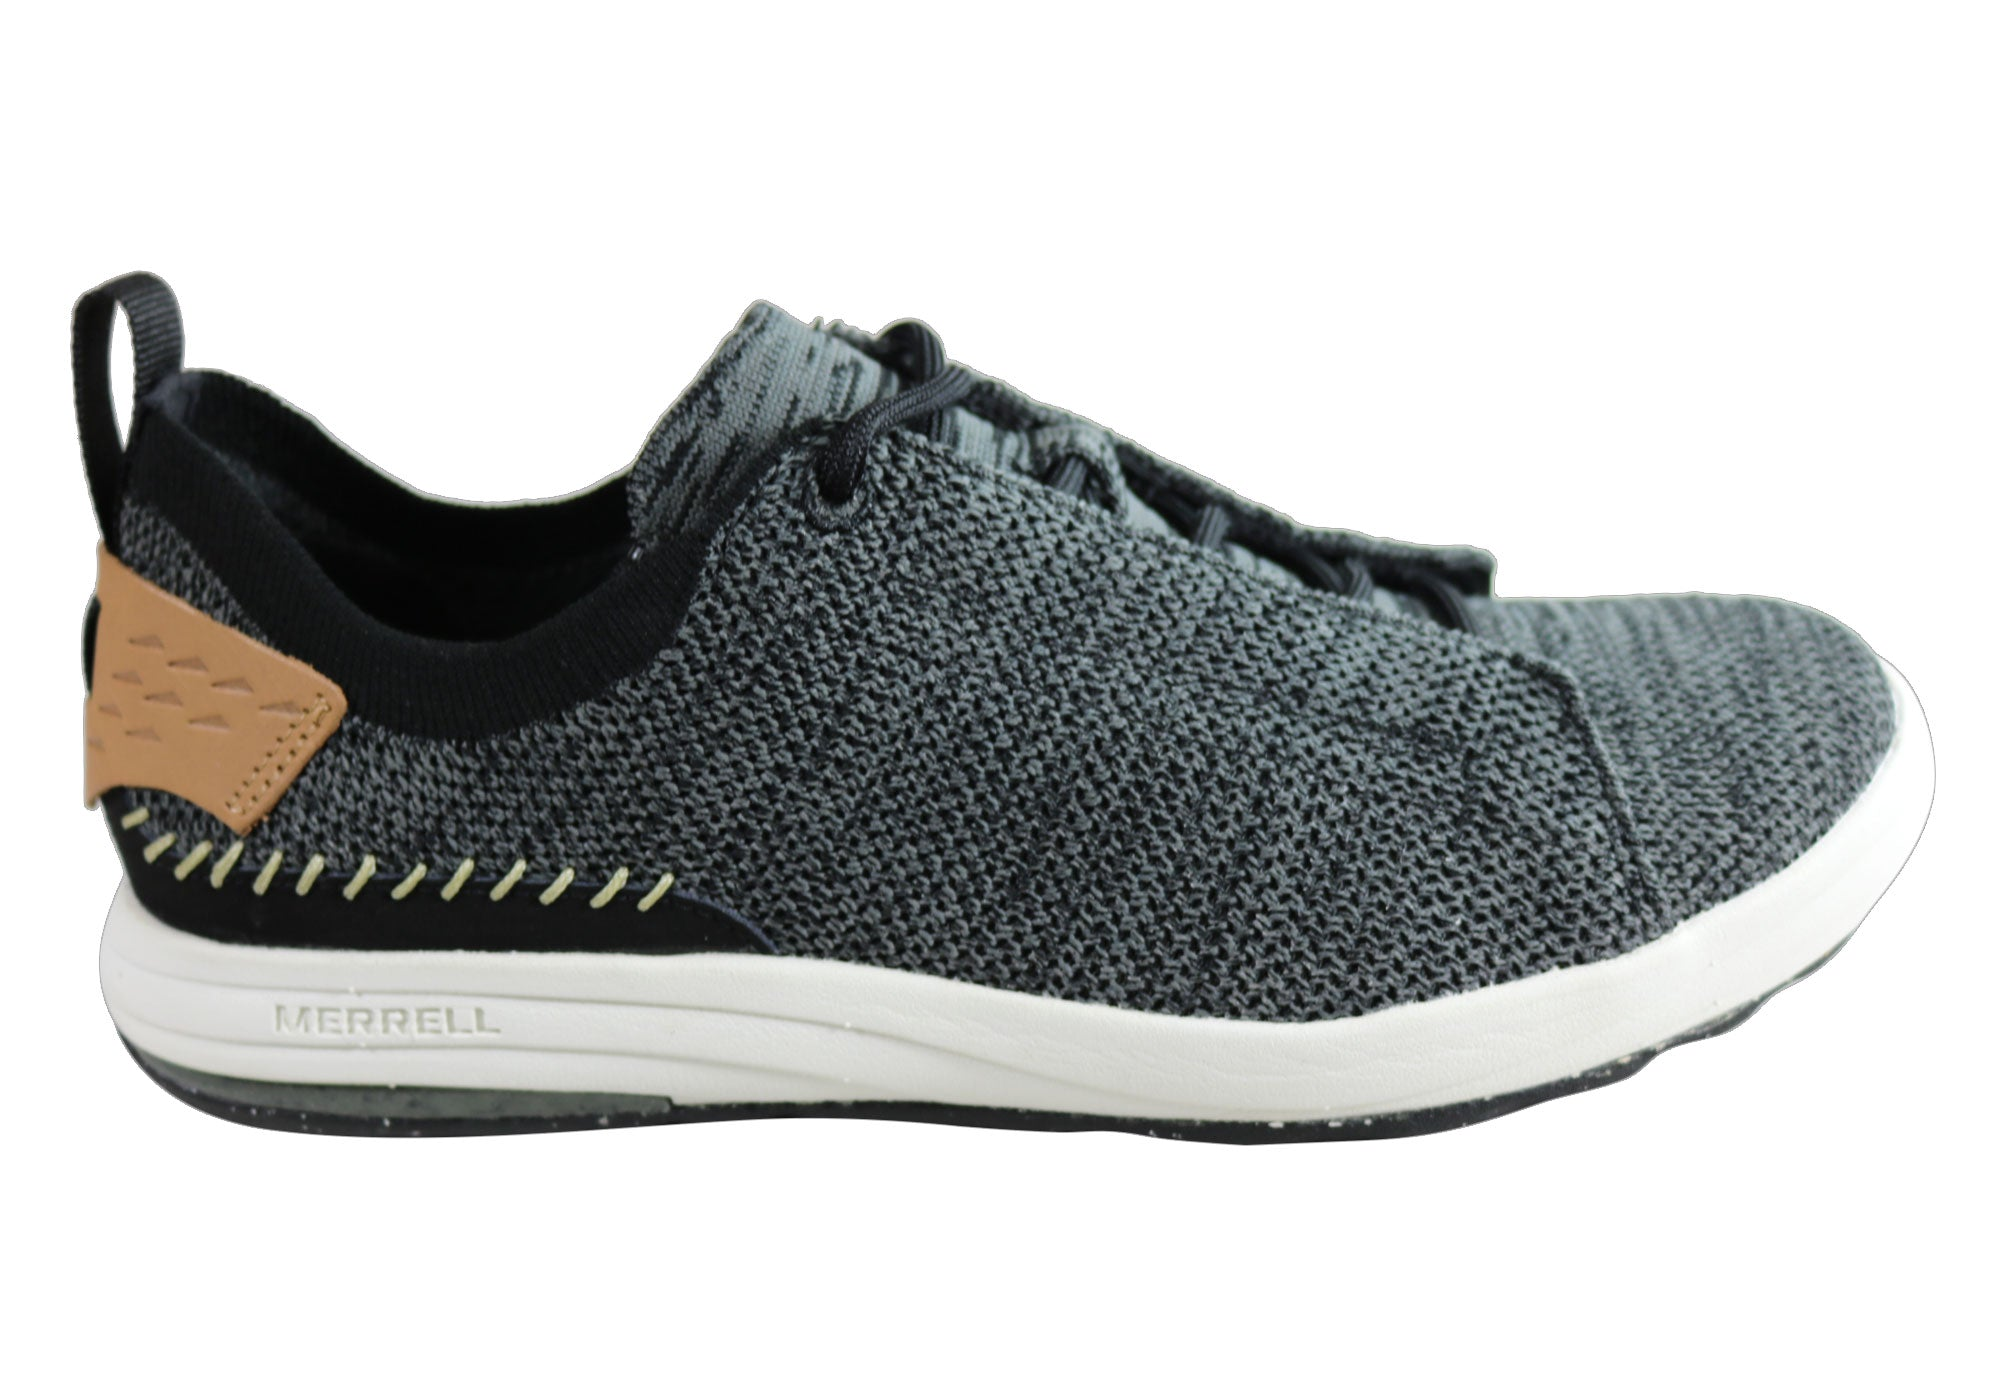 merrell recycled shoes